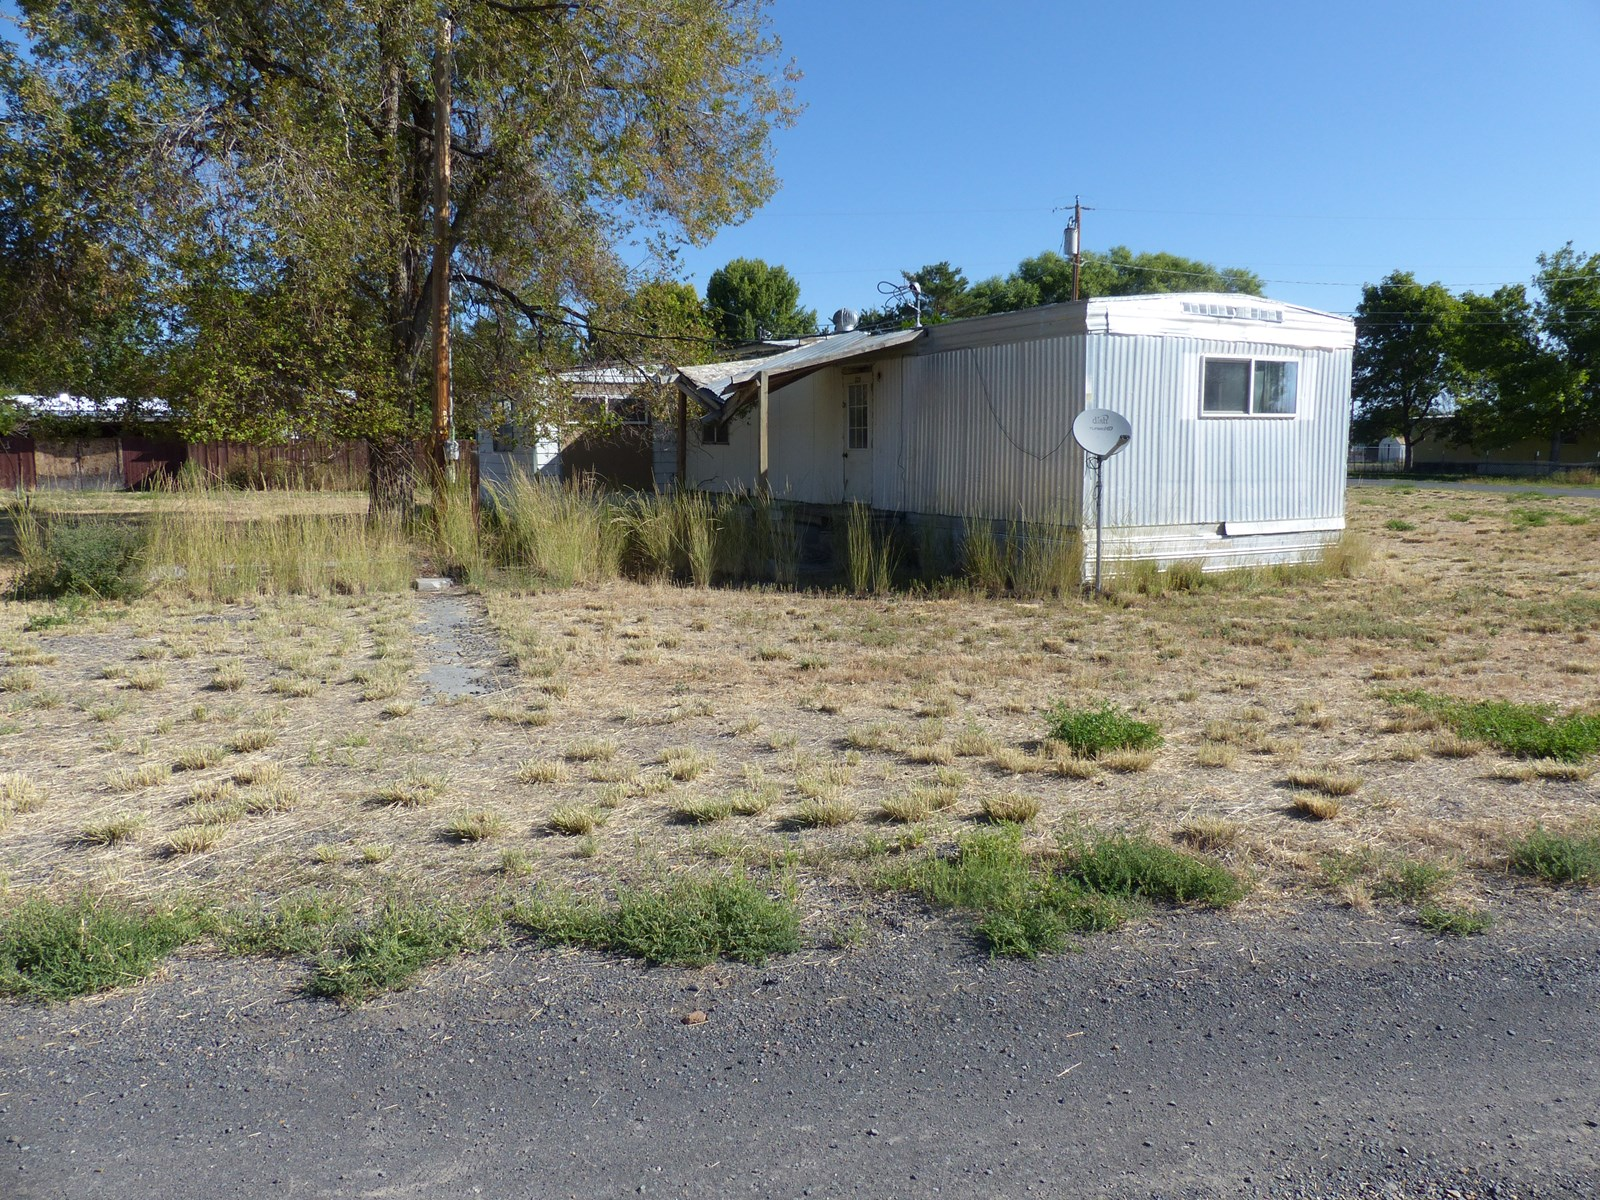 HALF ACRE LOT FOR SALE - WITH UTILITIES